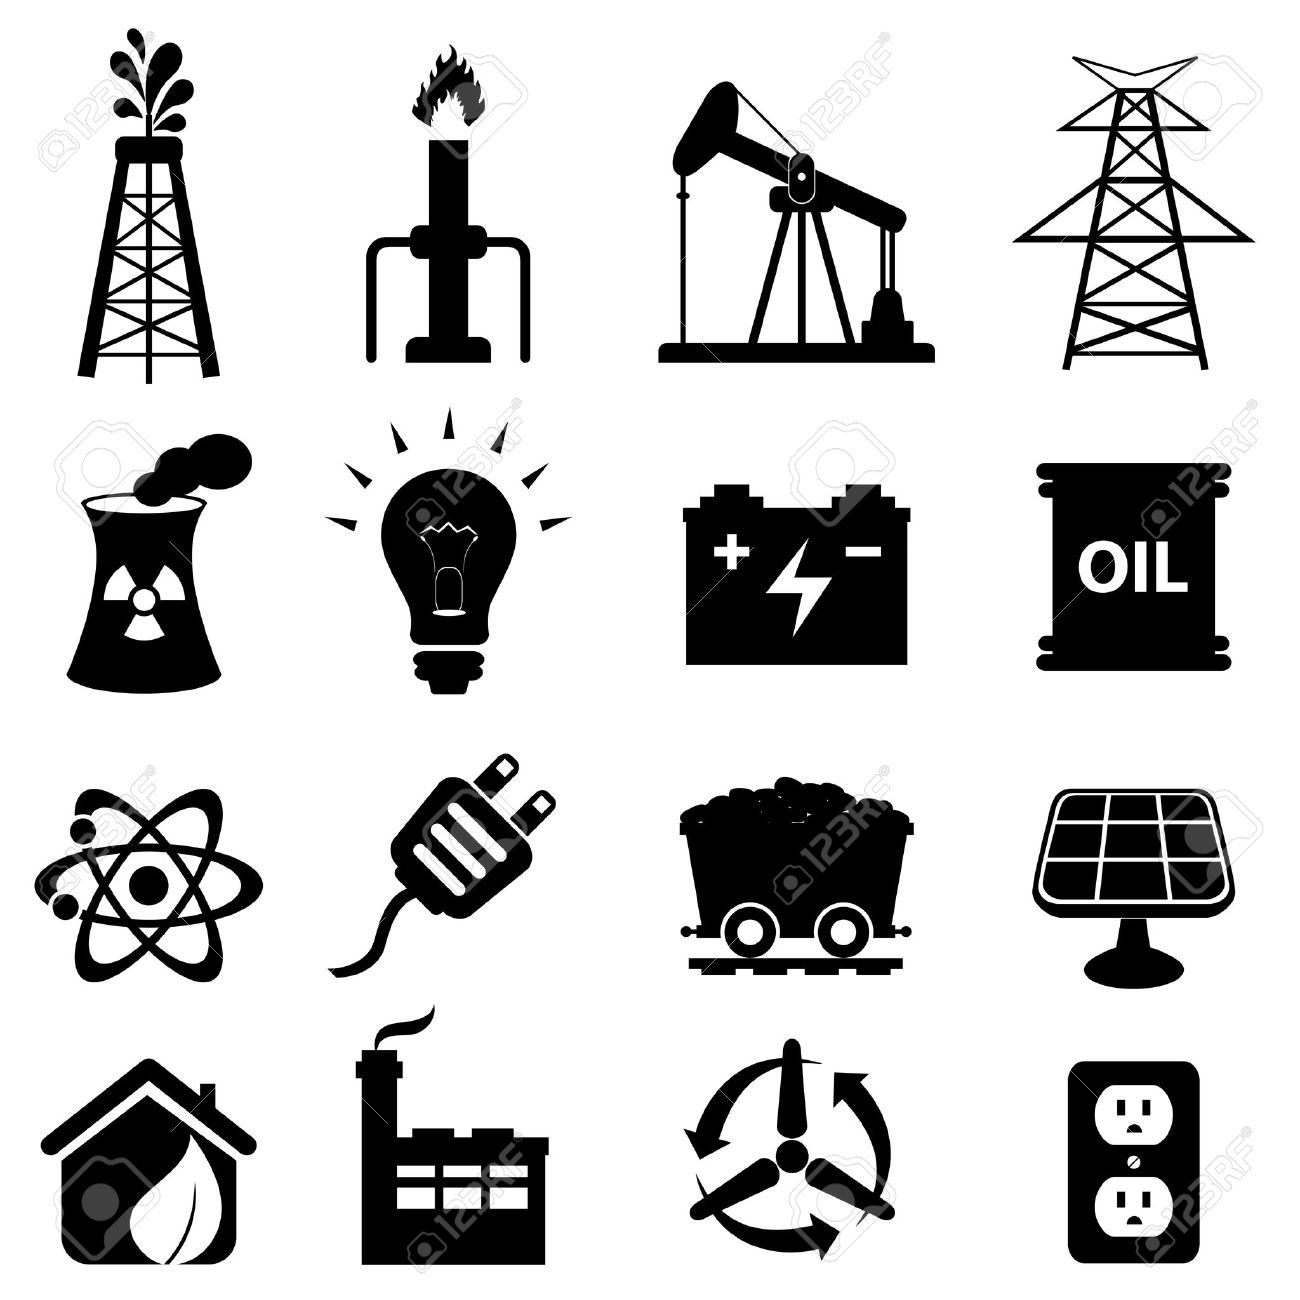 Oil drilling clipart picture royalty free download Oil Rig clipart icon #9 | HTV Vinyl | Clip art, Oil rig, Icon set picture royalty free download